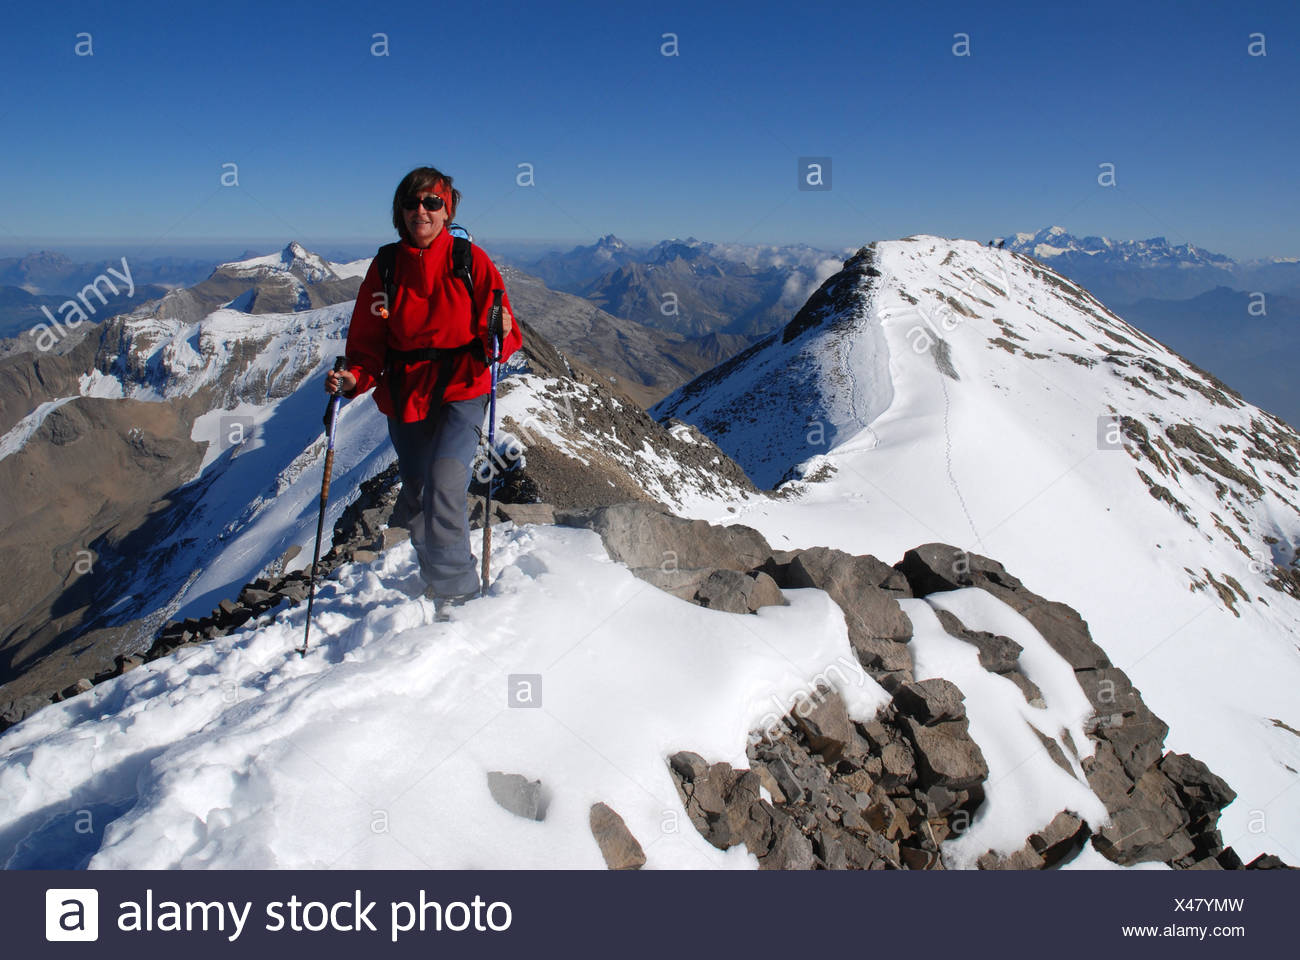 Alps, alpine, alpinisme, mountains, Bernese Oberland, mountain sport, mountaineering, woman, Wildhorn, summit, peak, Valais, Swi Stock Photo